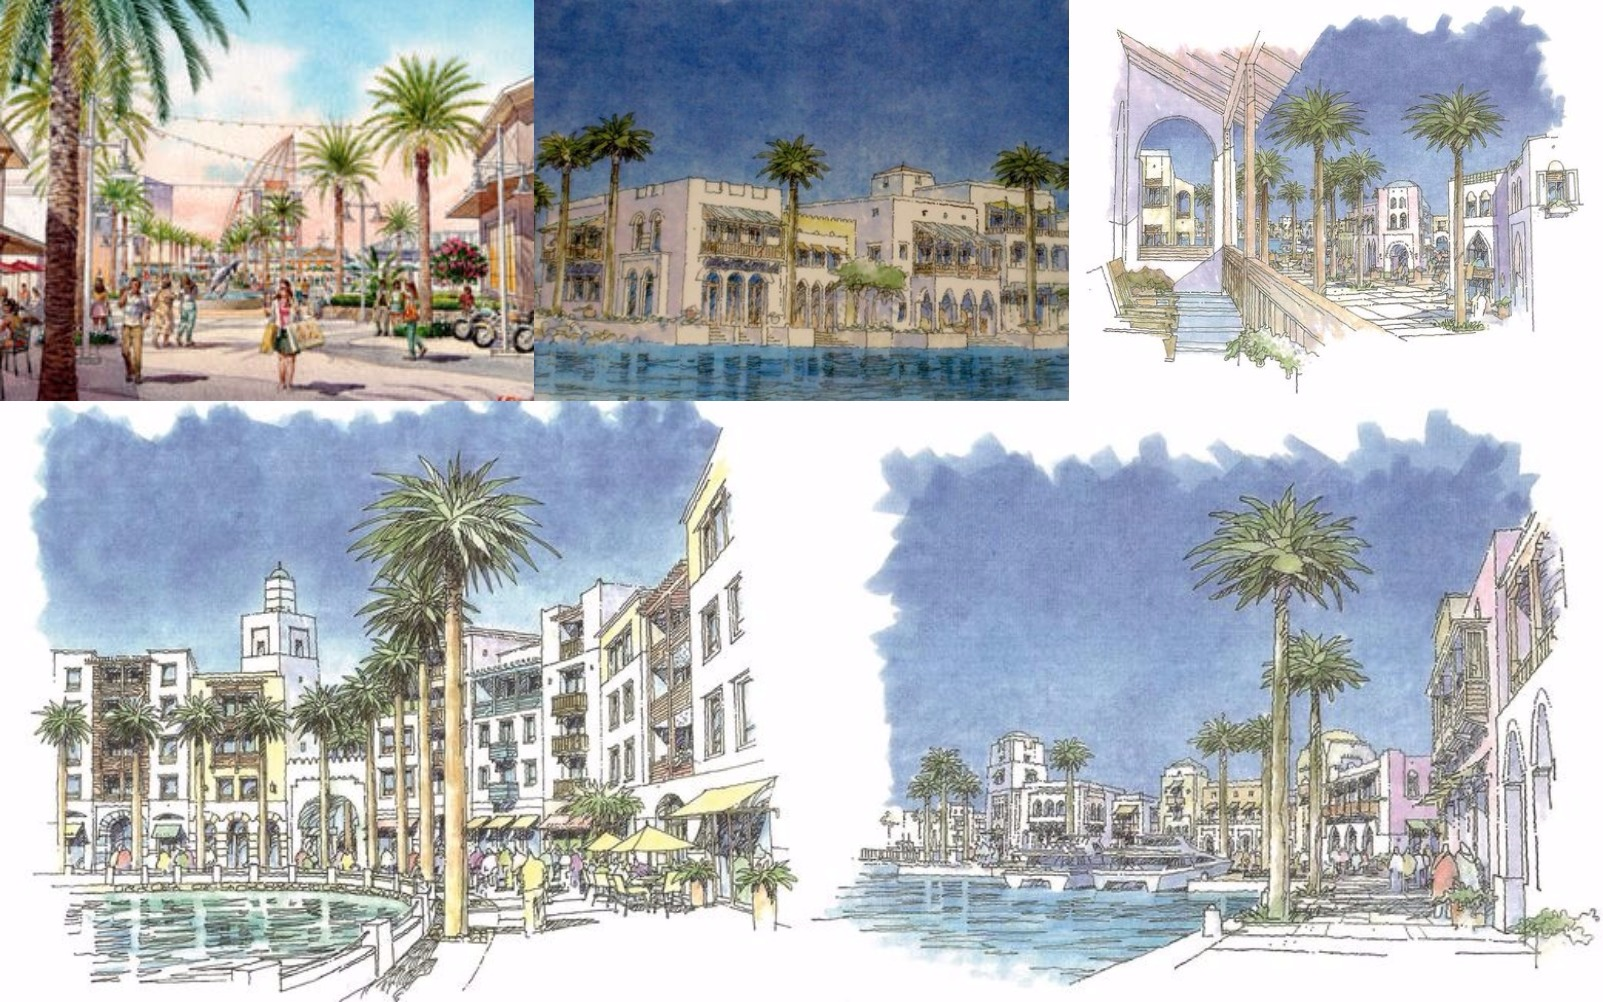 Conceptual drawings provided to Port Canaveral by Watersmark, LLC